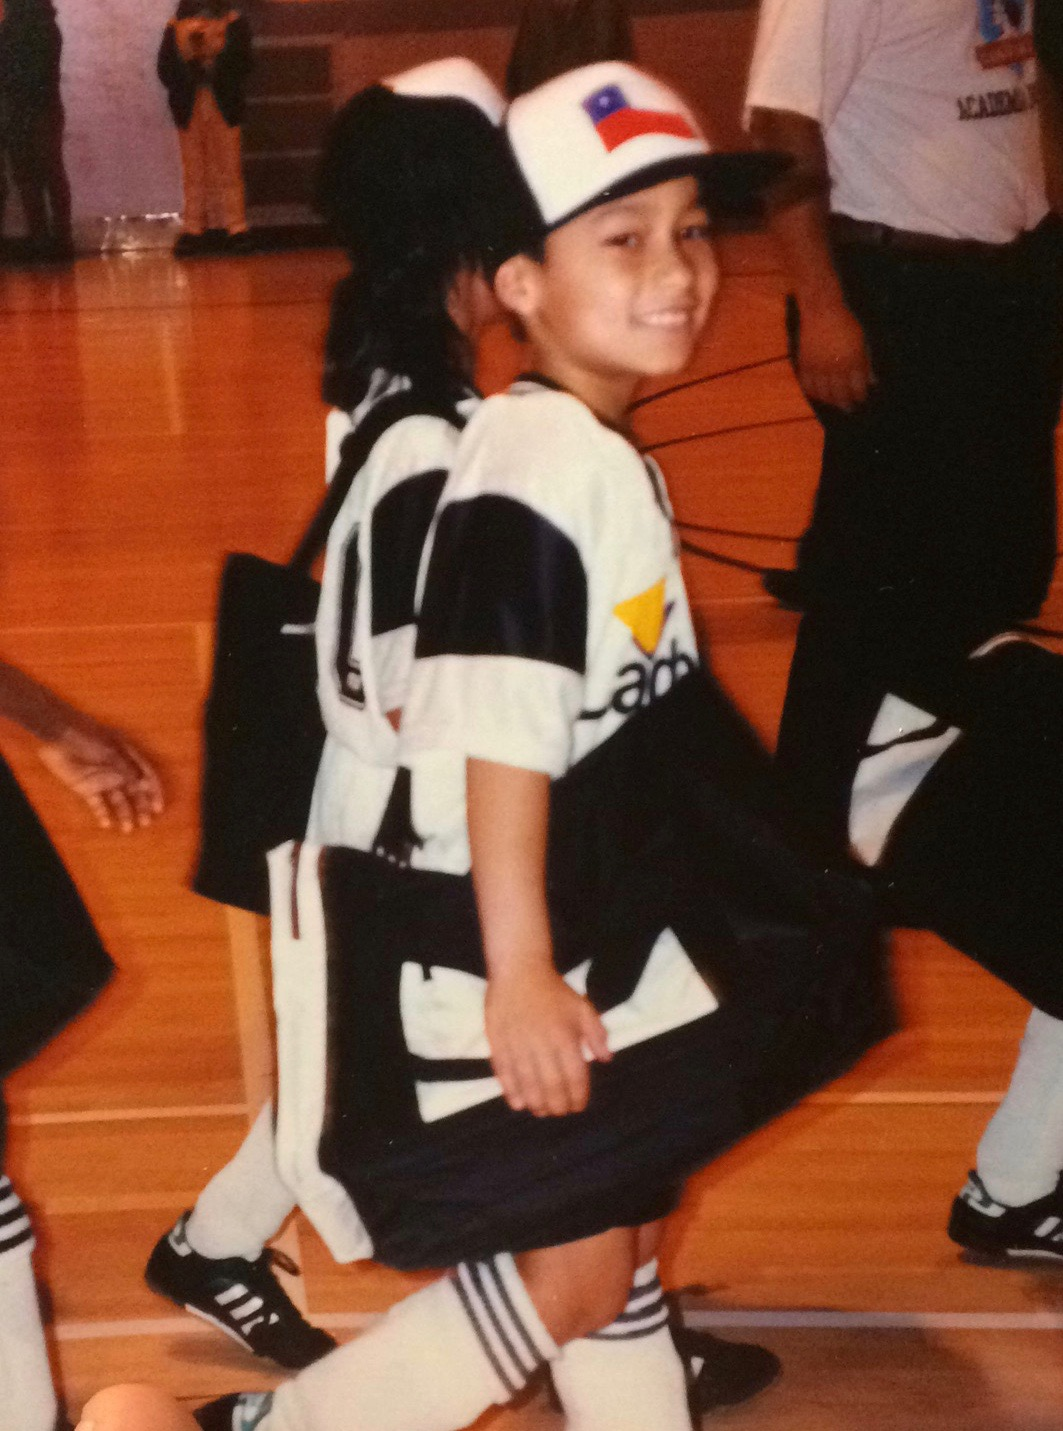 In my soccer uniform around 5-7 years old.